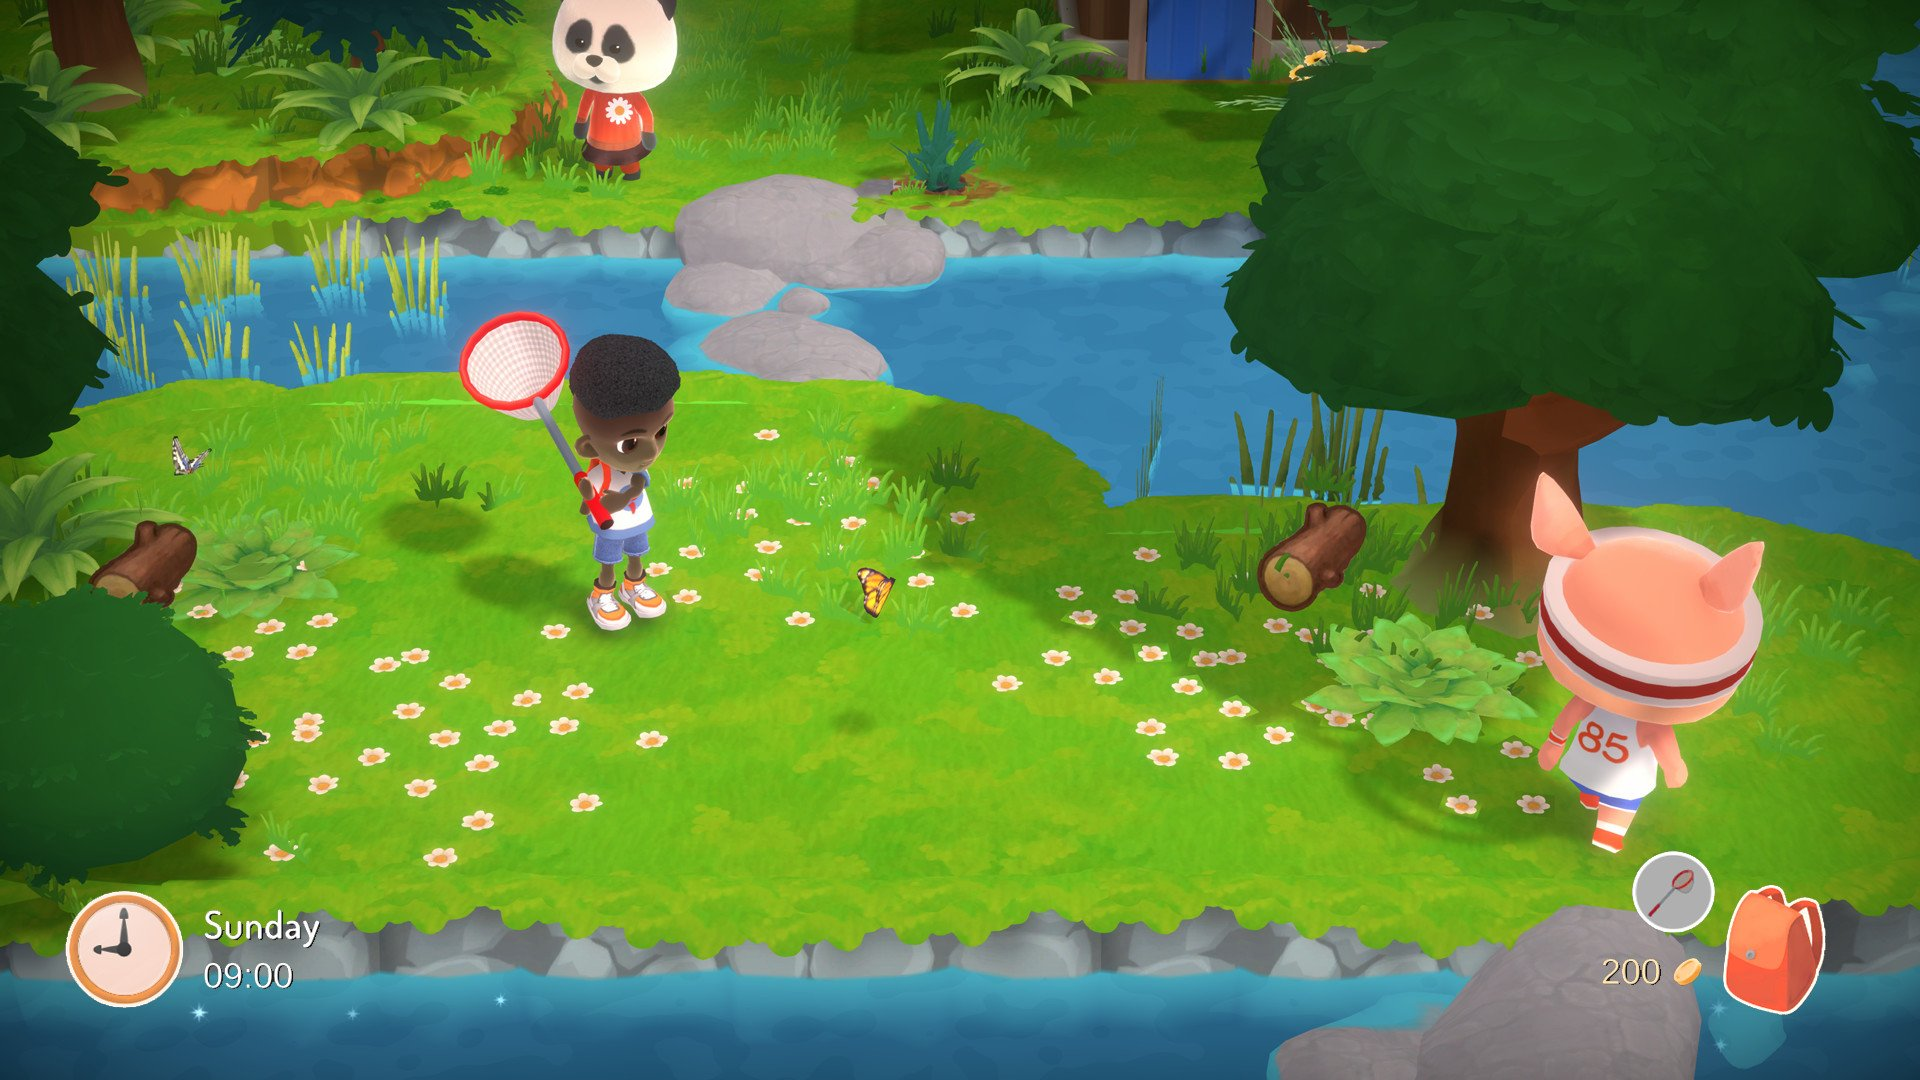 Hokko LIfe is an indie Animal Crossing game for PC